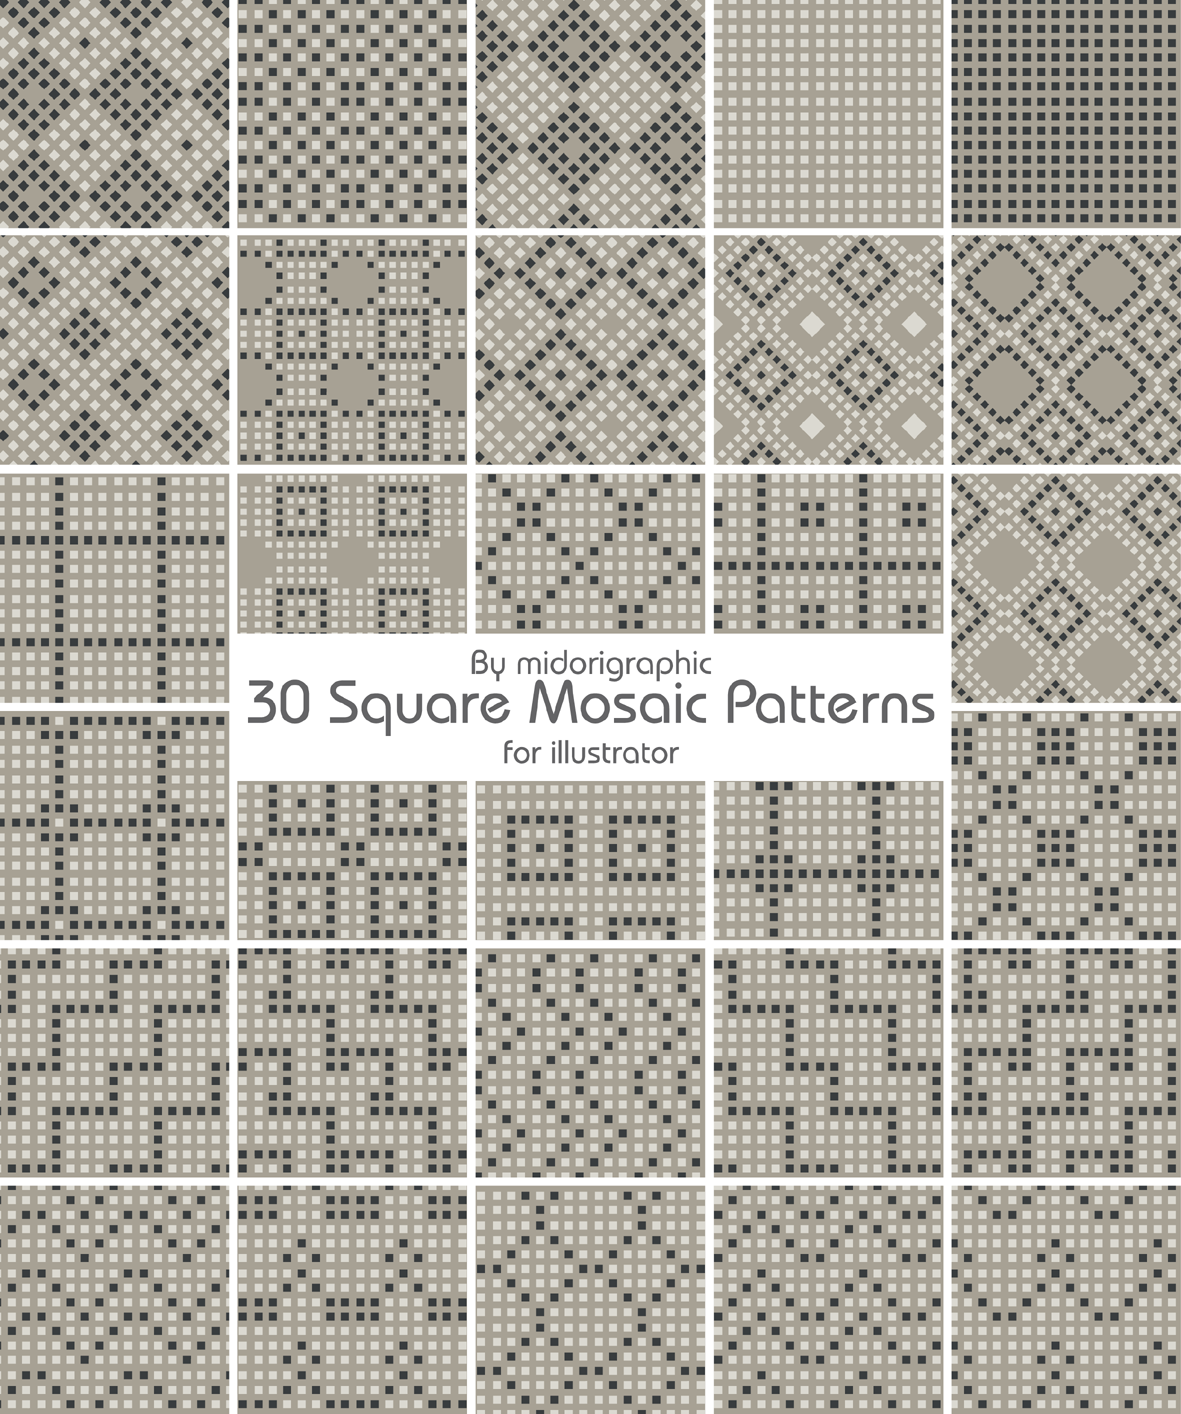 http://img08.deviantart.net/17a5/i/2012/065/a/9/mosaic_pattern_by_midorigraphic-d4rxa27.png